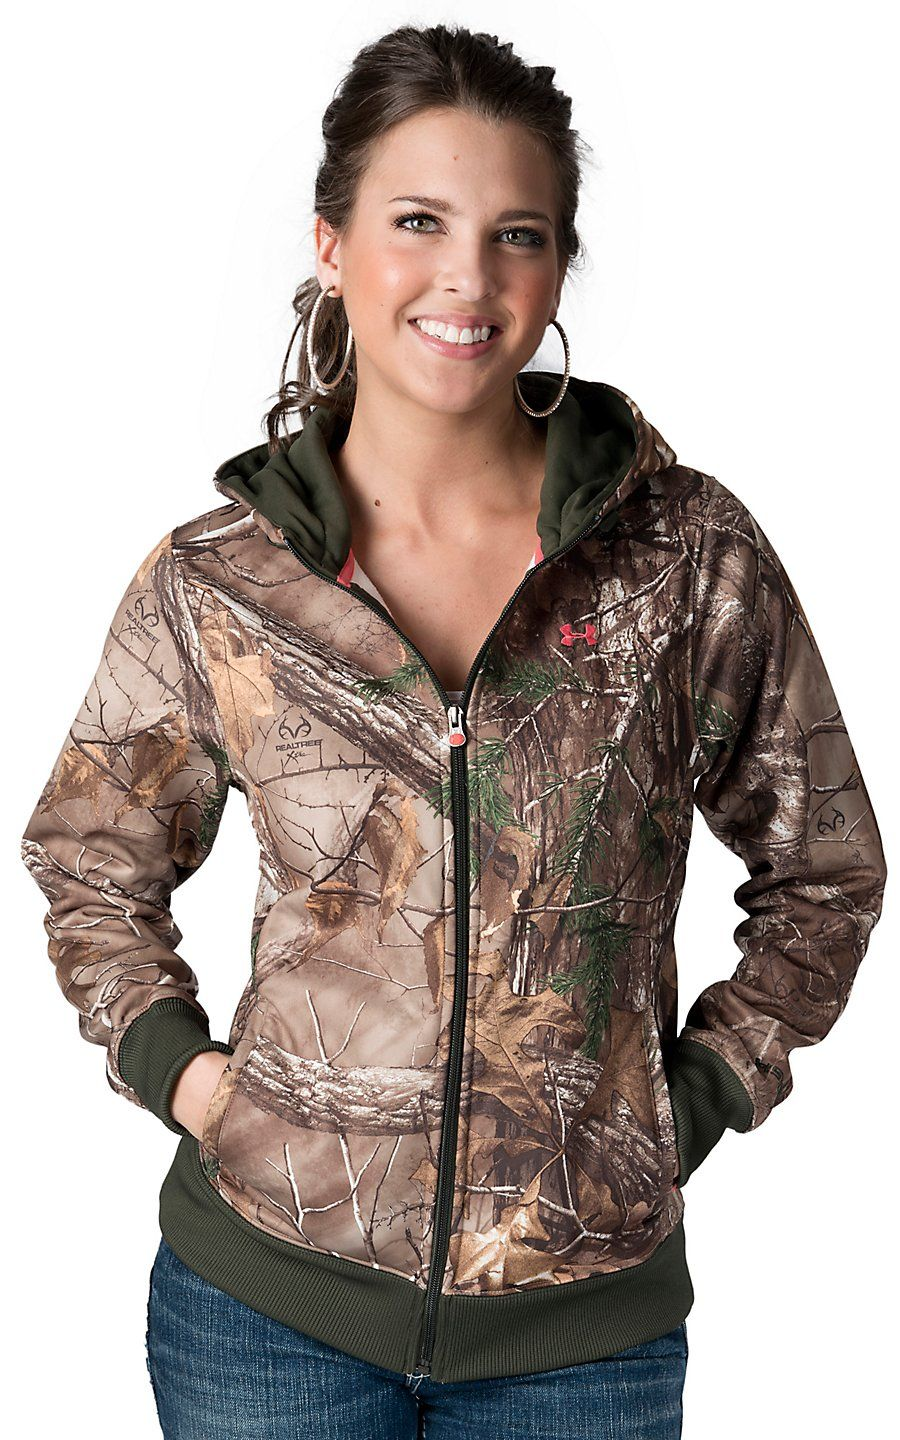 34595981d8e5f Under Armour® Women's Realtree™ Camouflage Zip Up Hoodie. Just got this for  my b-day! Can't wait for hunting season!